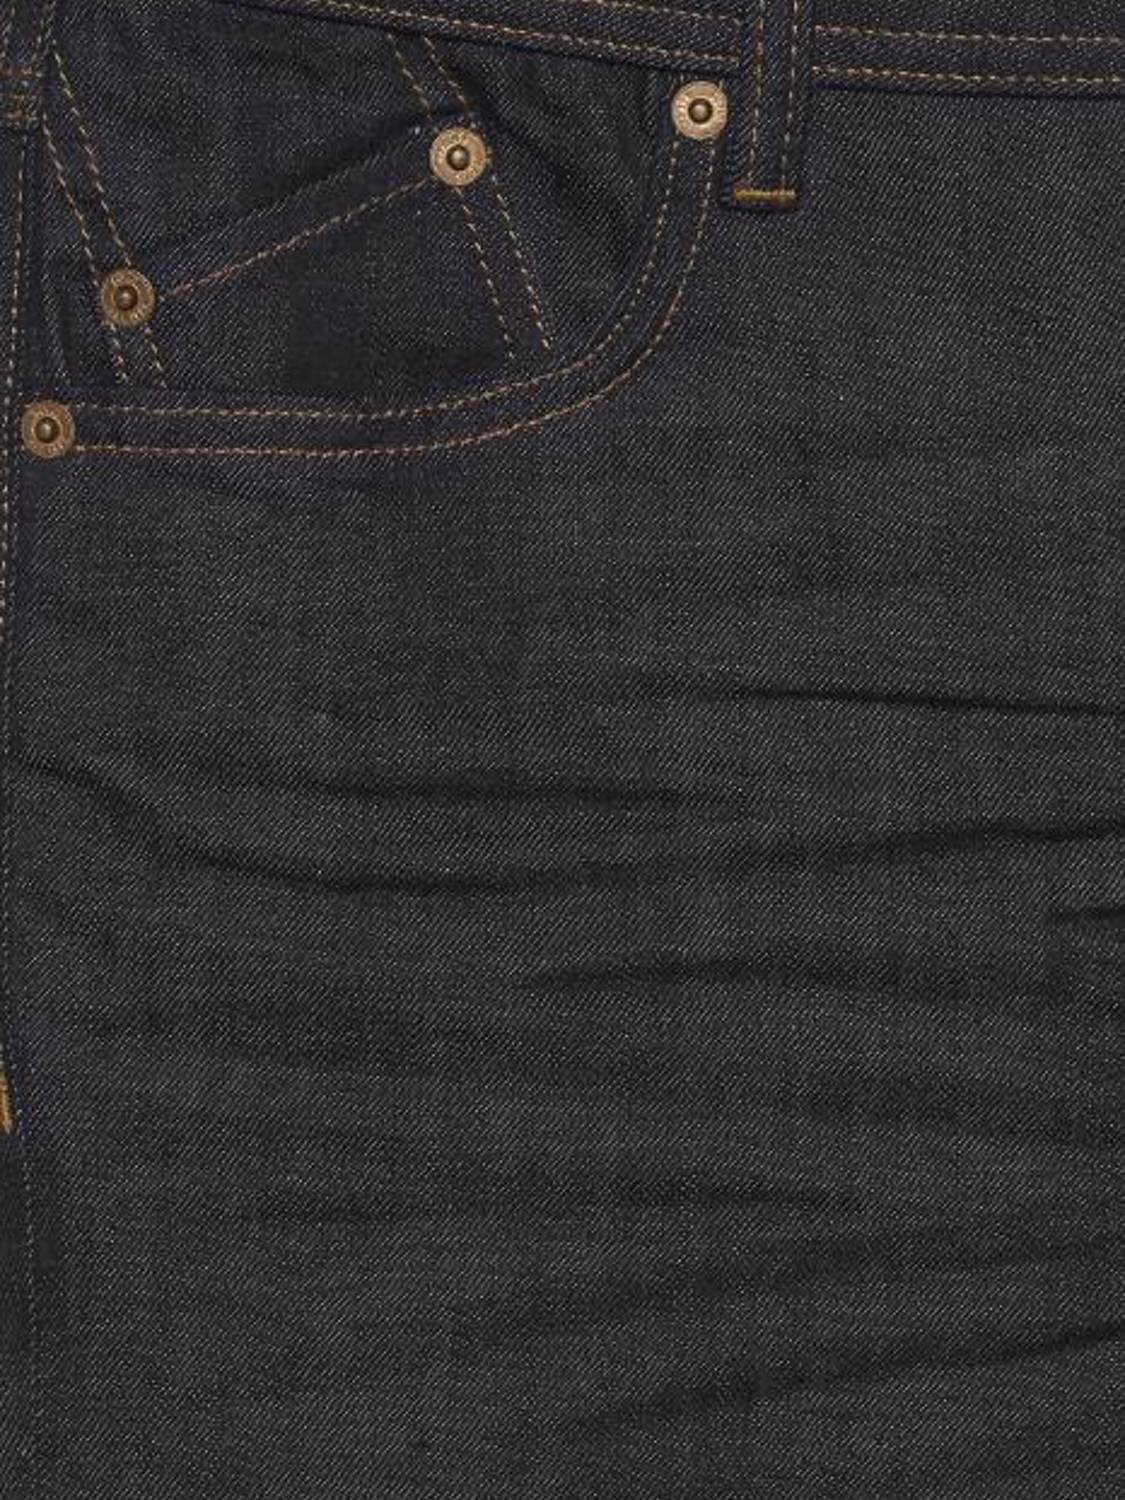 SOLID - JEANS Dark Blue | GATE 36 Hobro